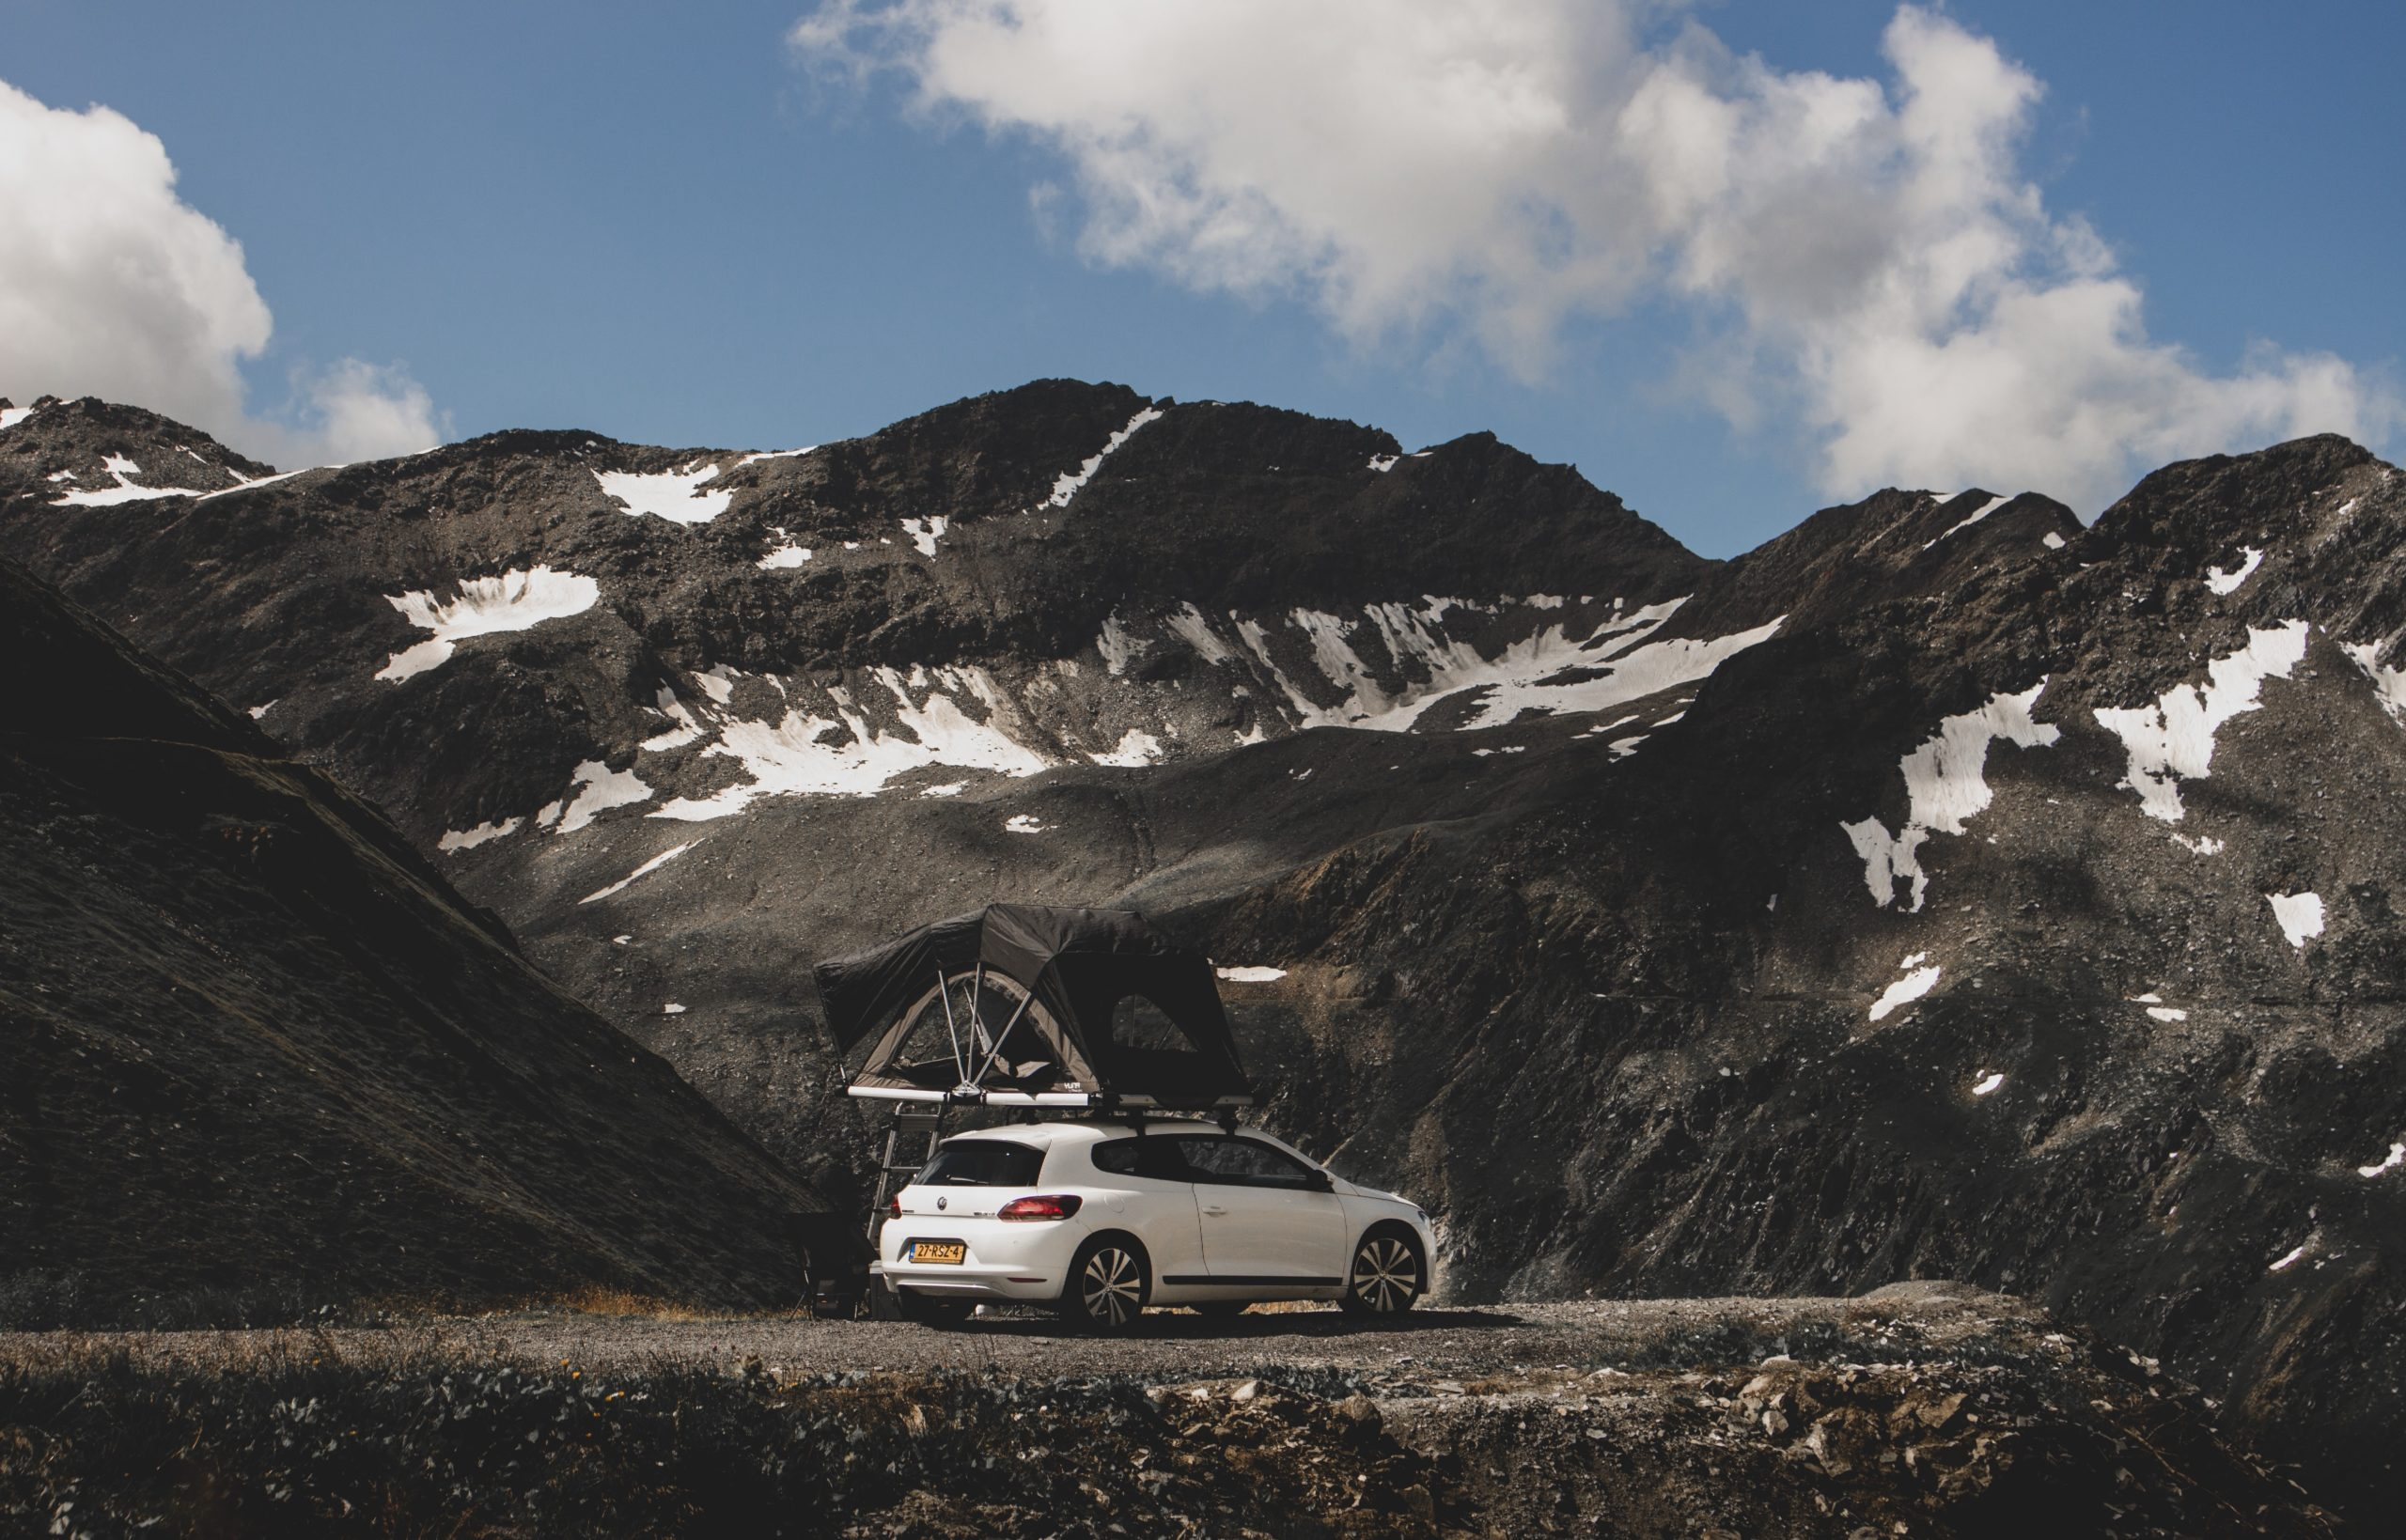 Conclusion for Tents That Attach to SUVs